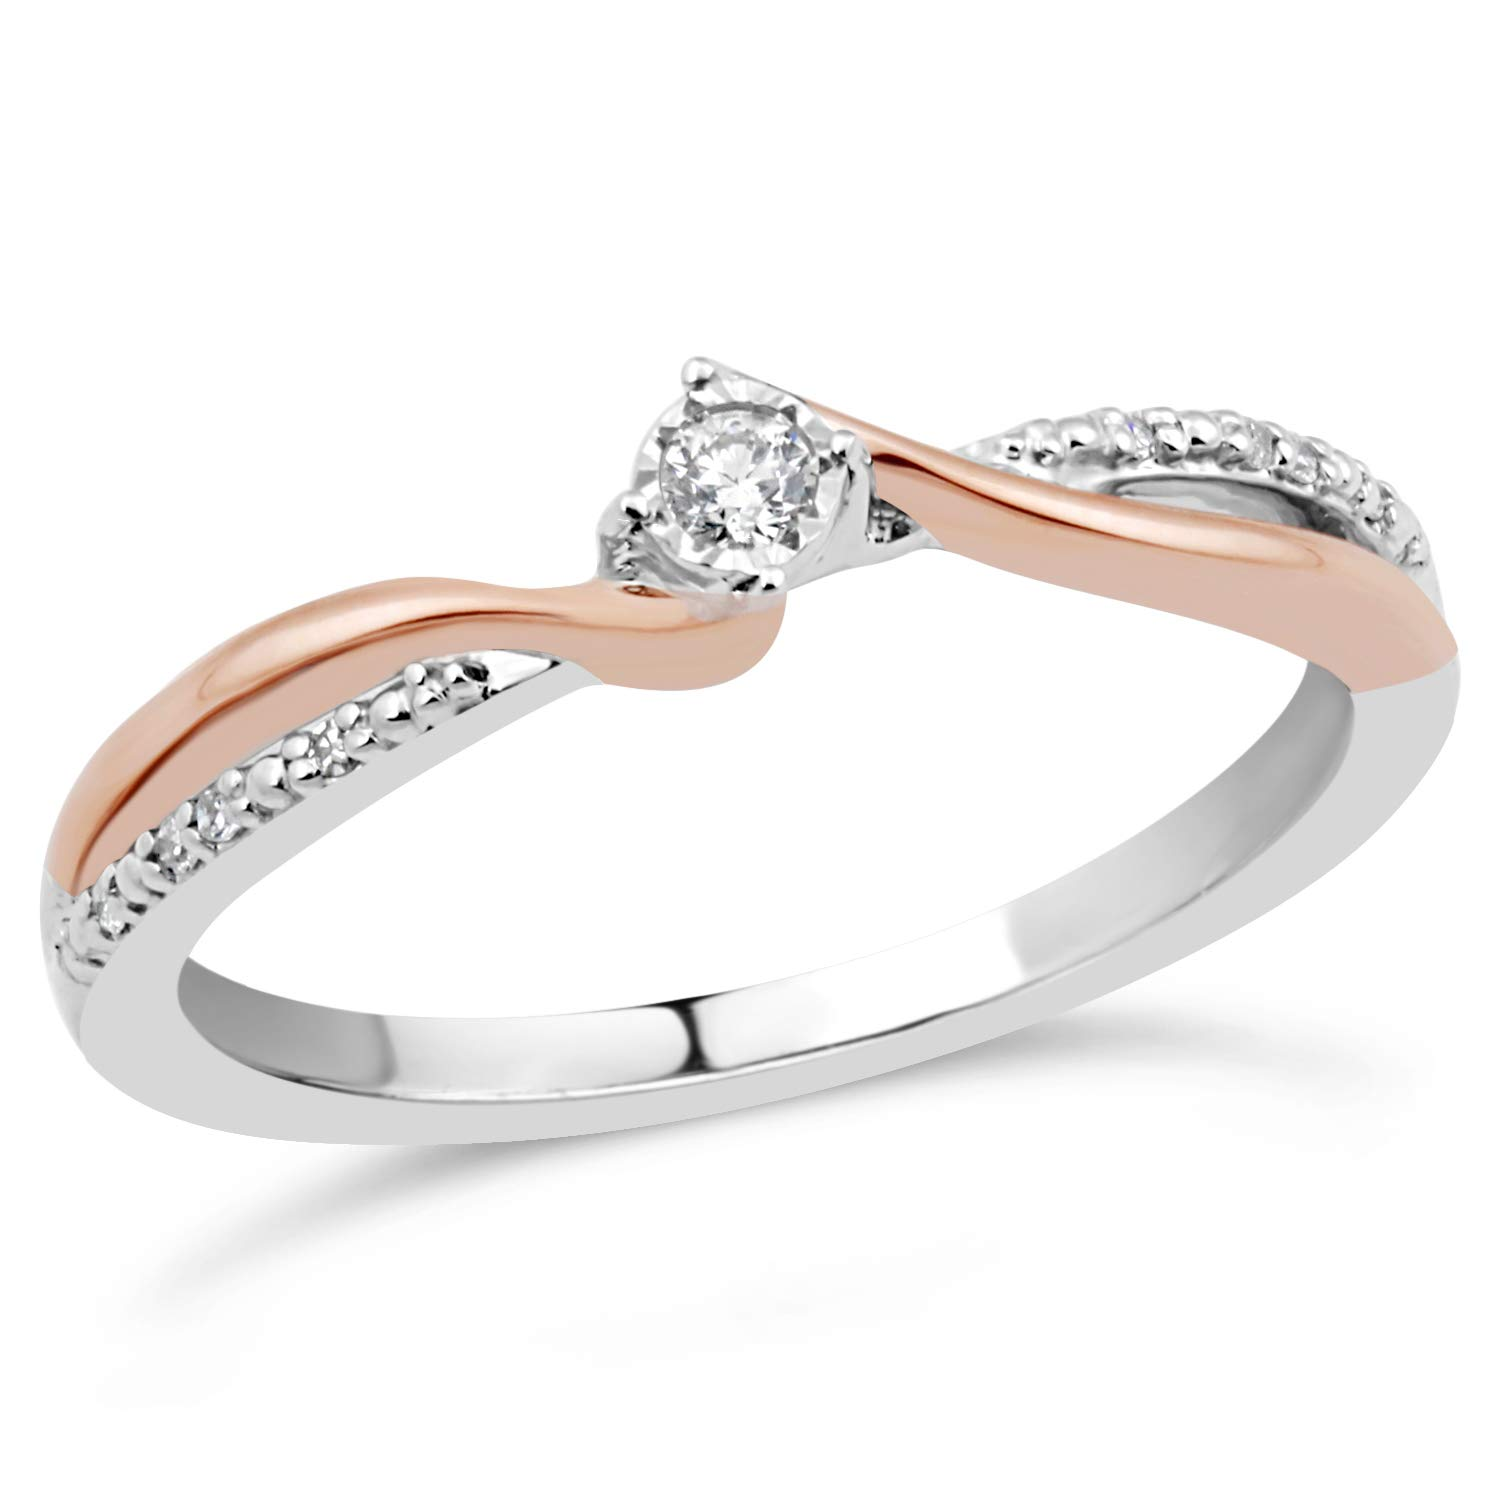 Diamond Promise Ring in Sterling Silver and 10k Rose Gold 1/10 cttw-Size 5